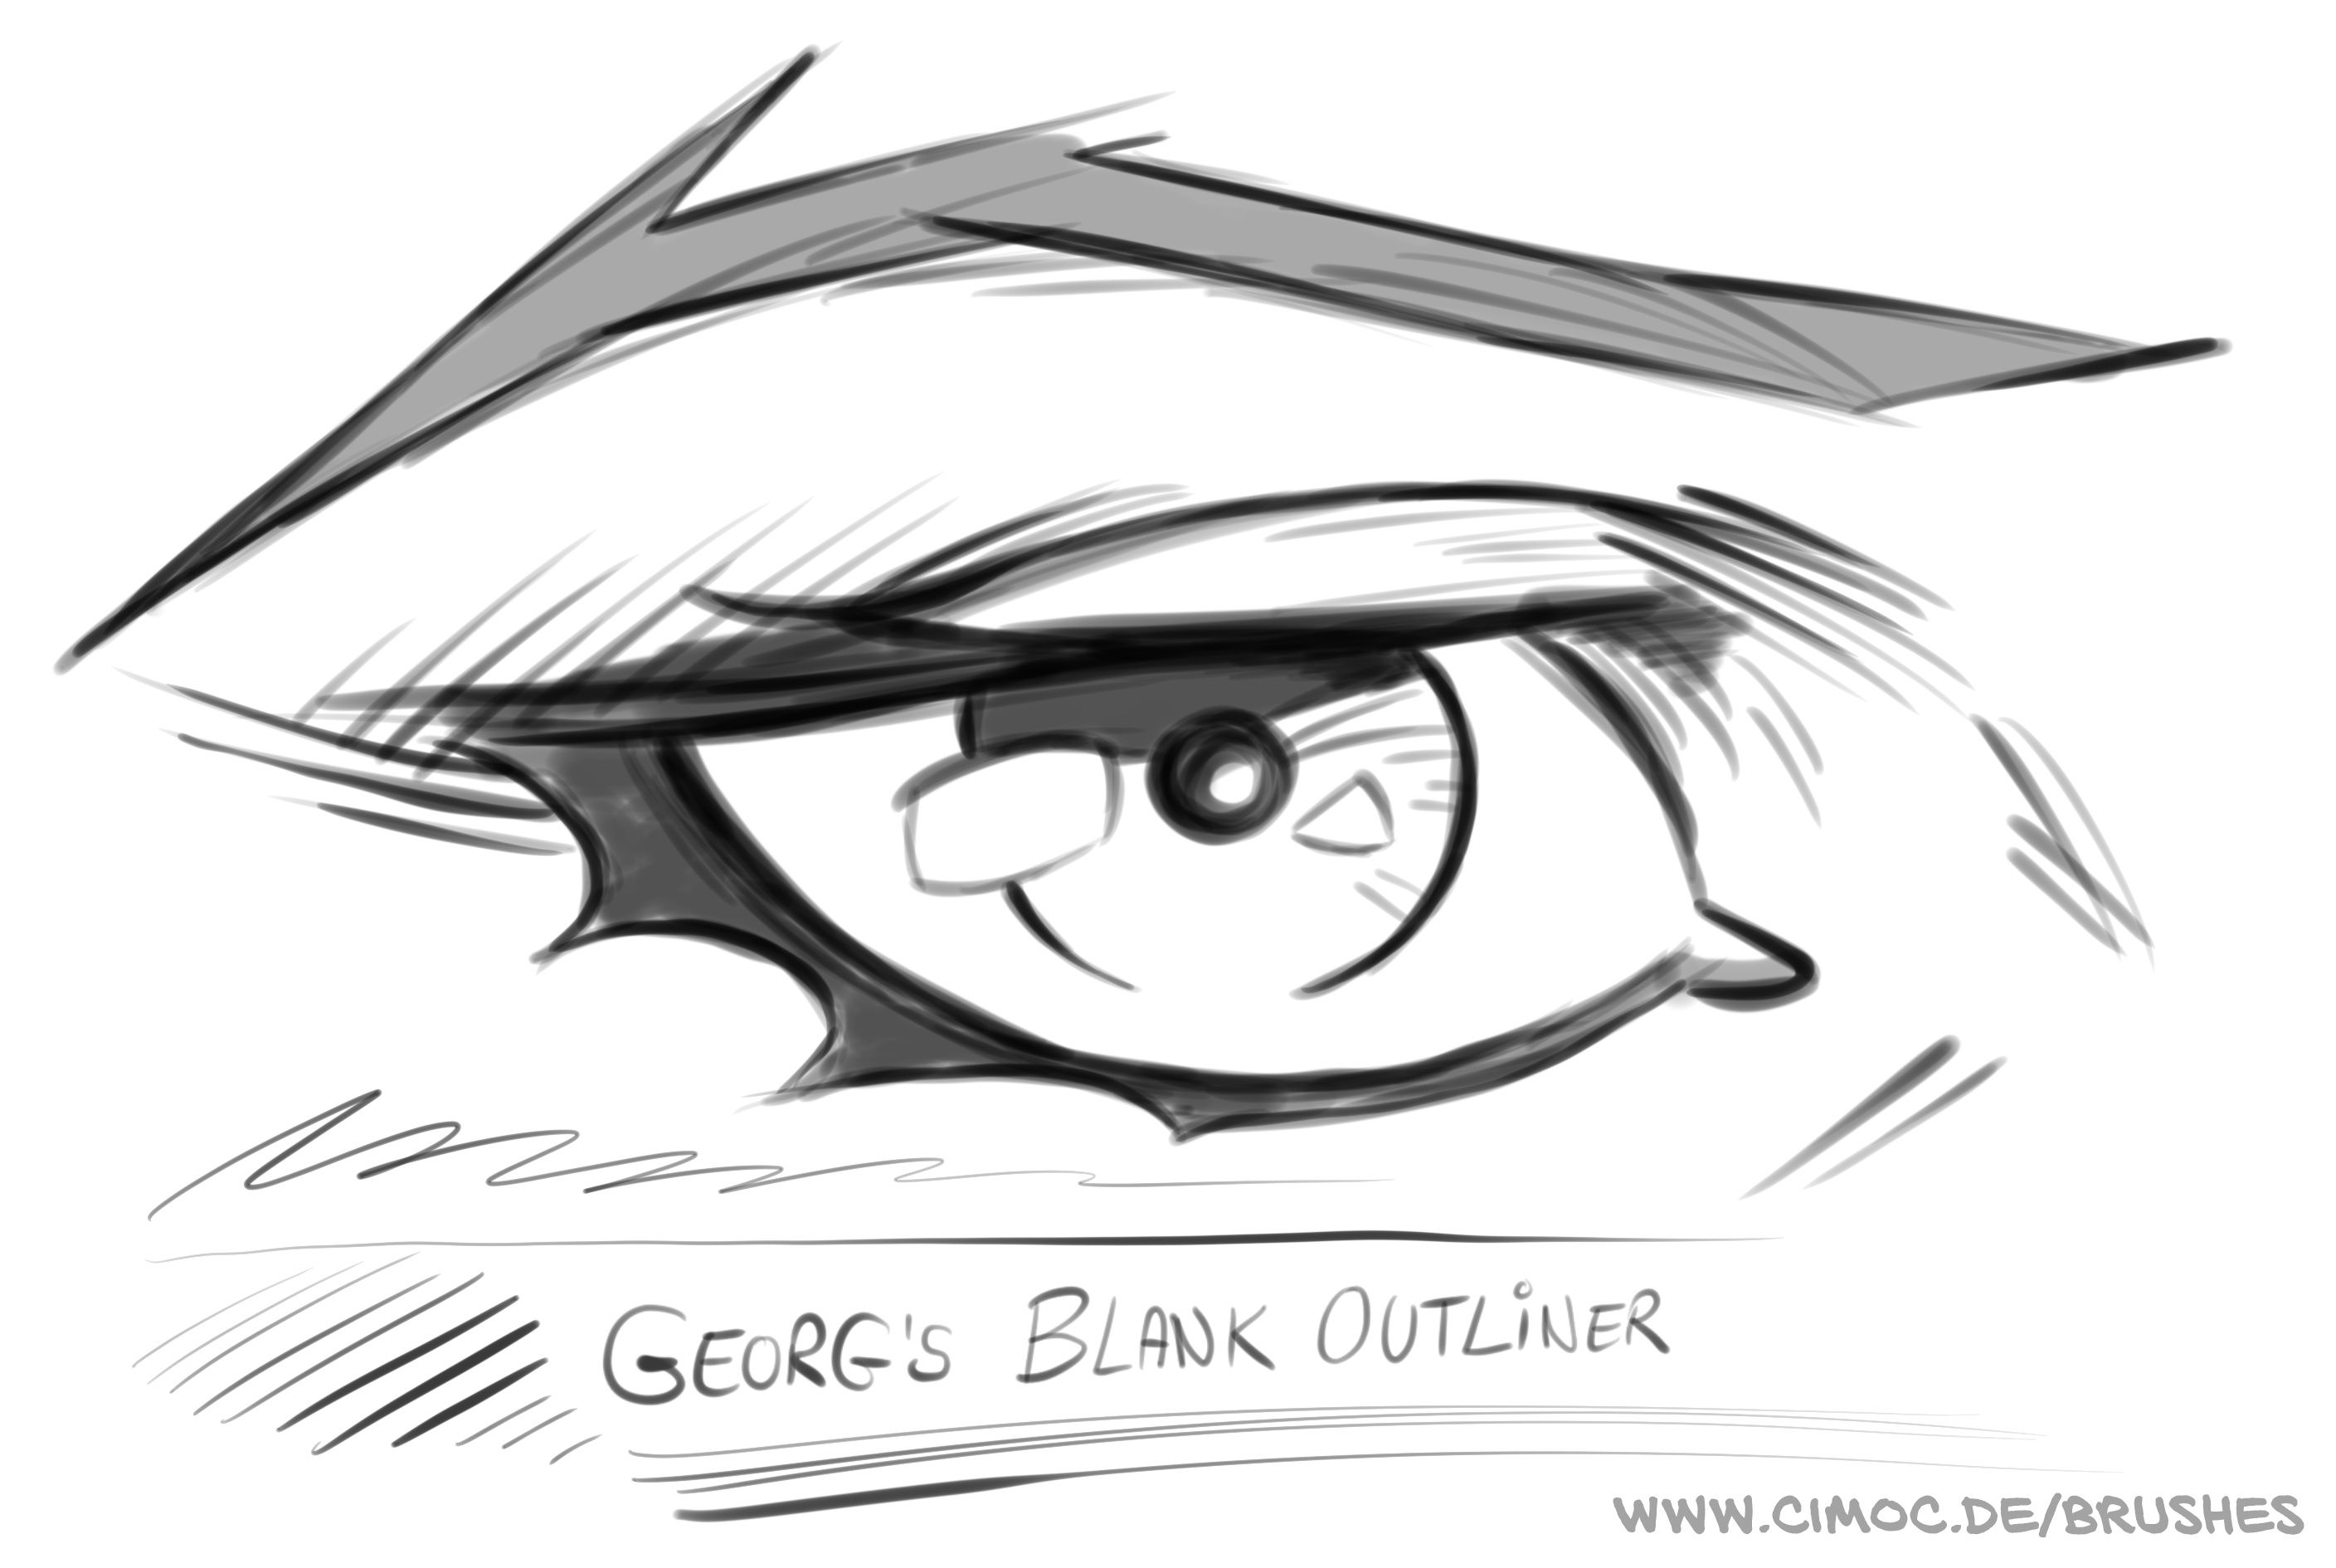 Georg's FREE SKETCH BRUSHES for Procreate | Procreate in